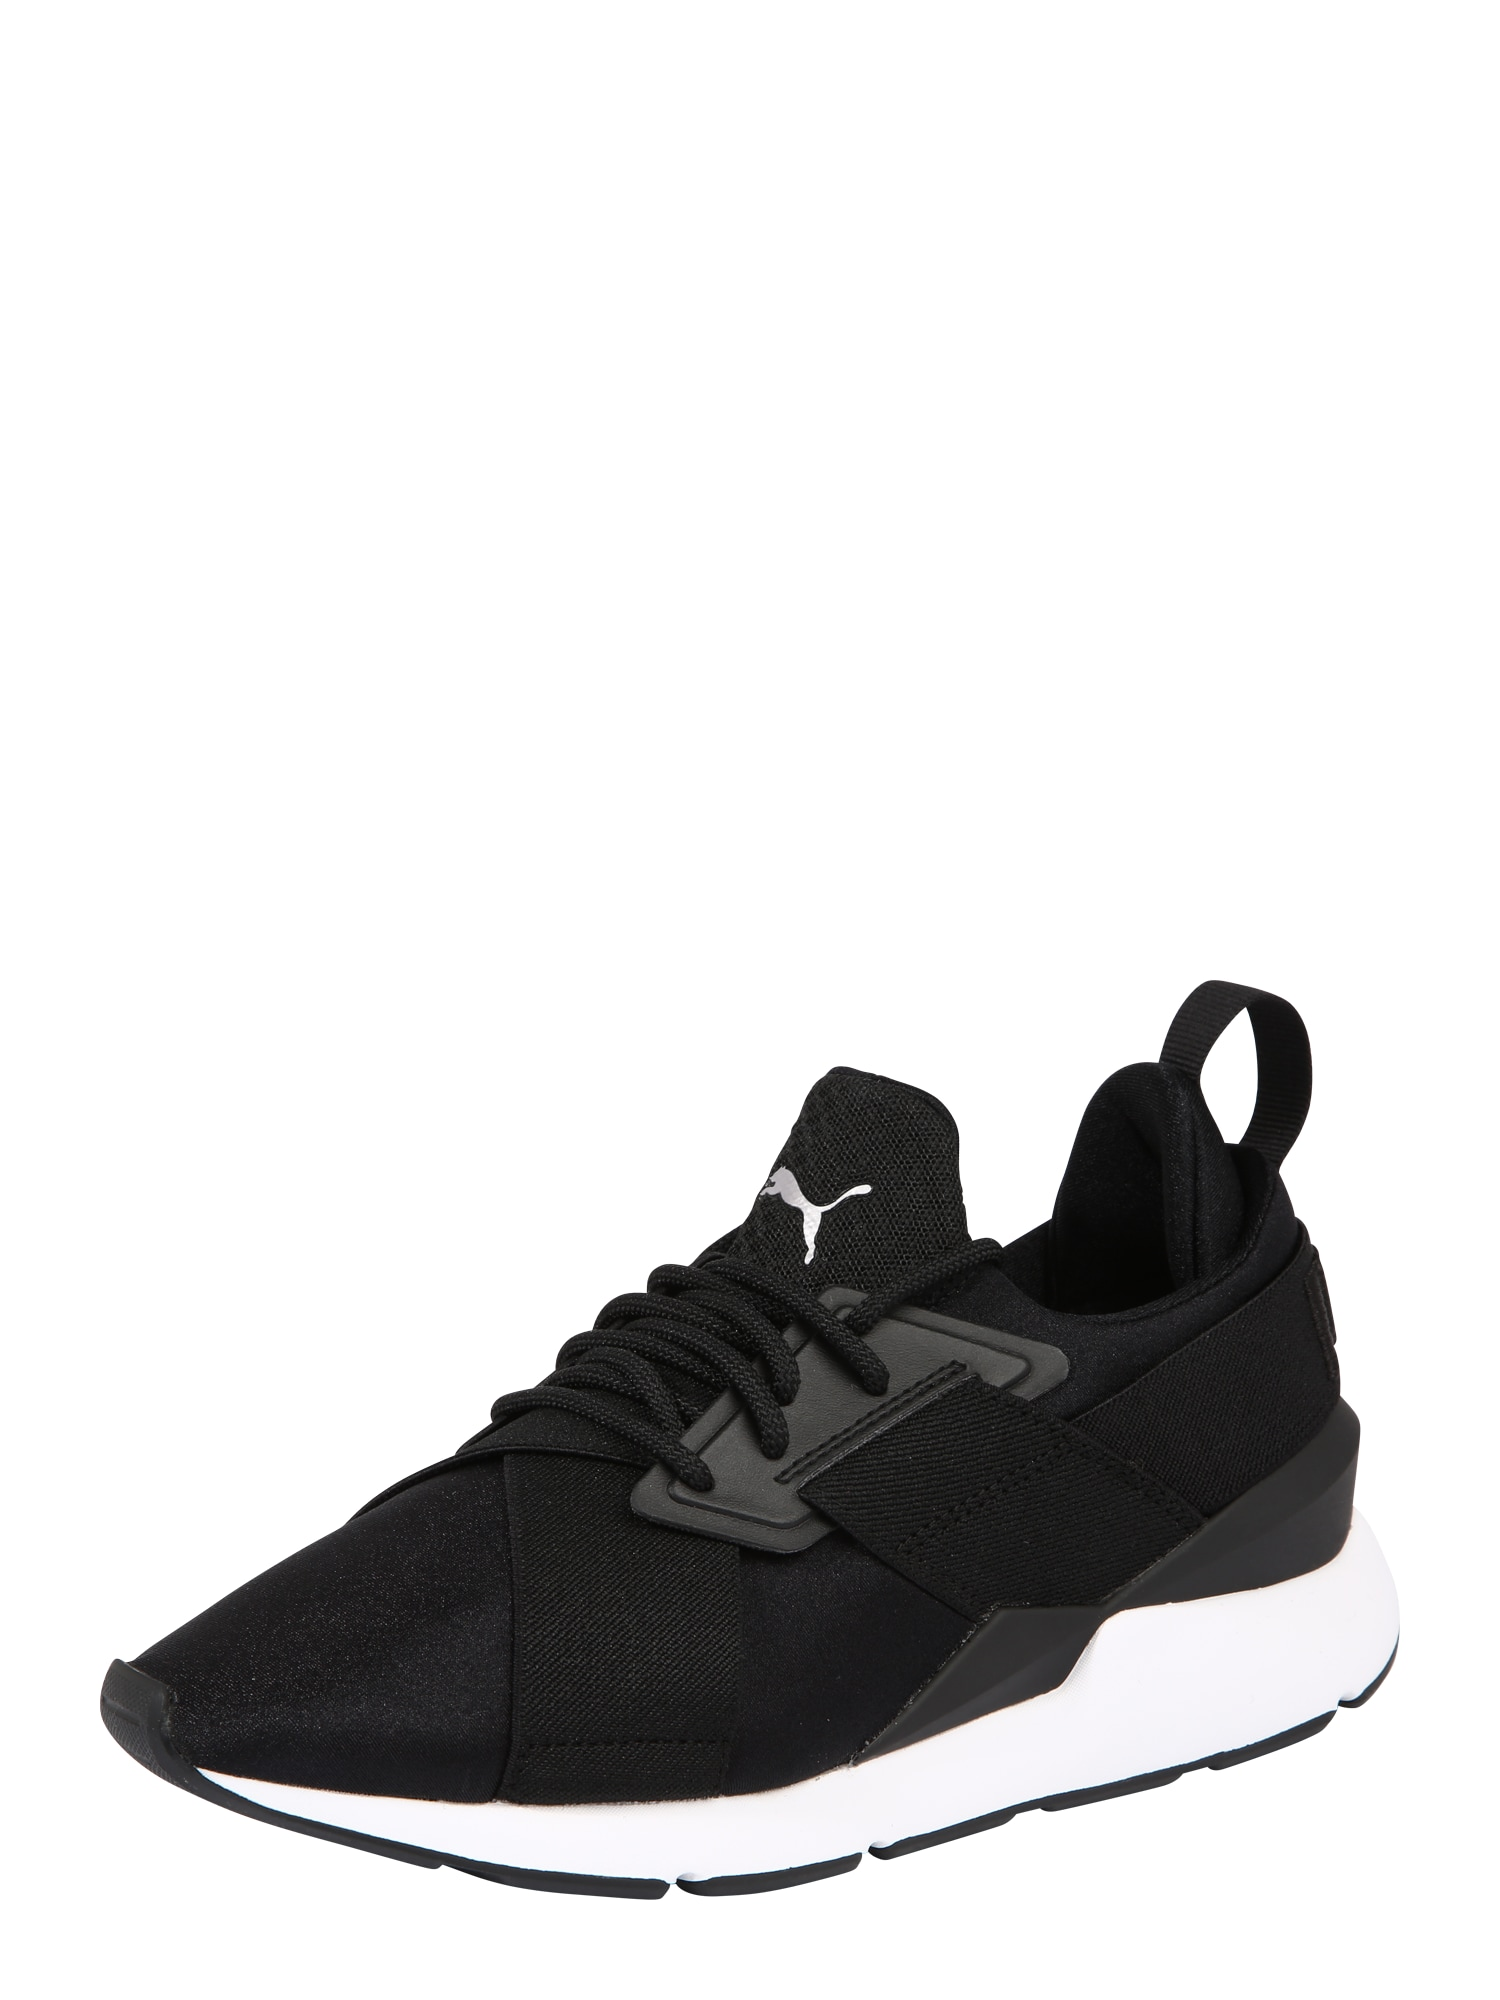 PUMA, Dames Sneakers laag 'Muse Satin Ep Wn's', zwart